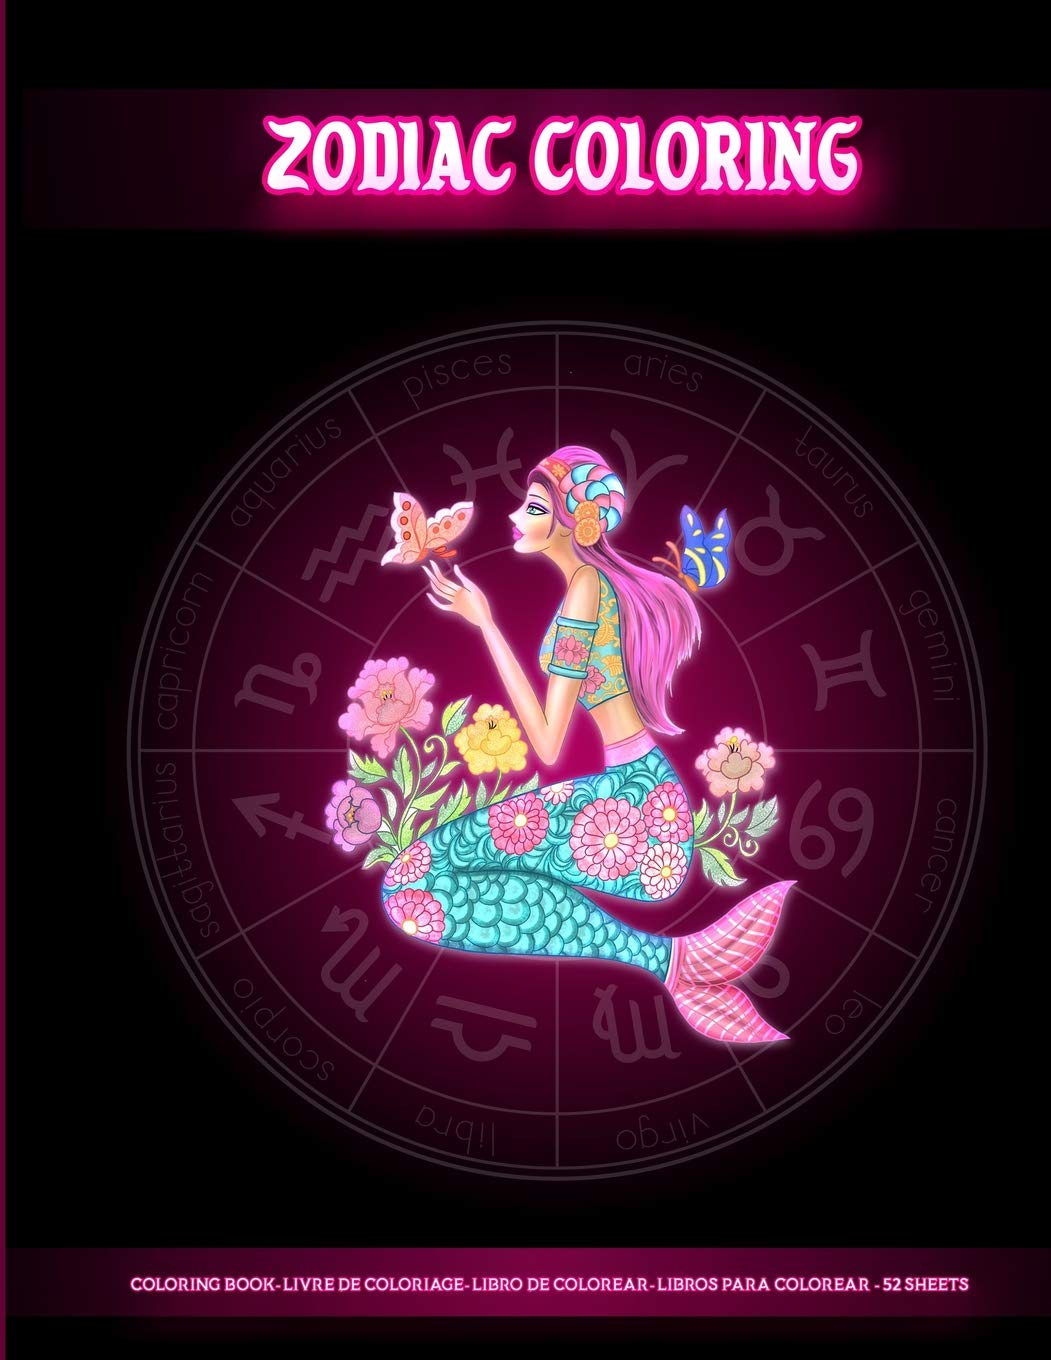 Zodiac Coloring: Coloring Book For Adults With Amazing Astrology